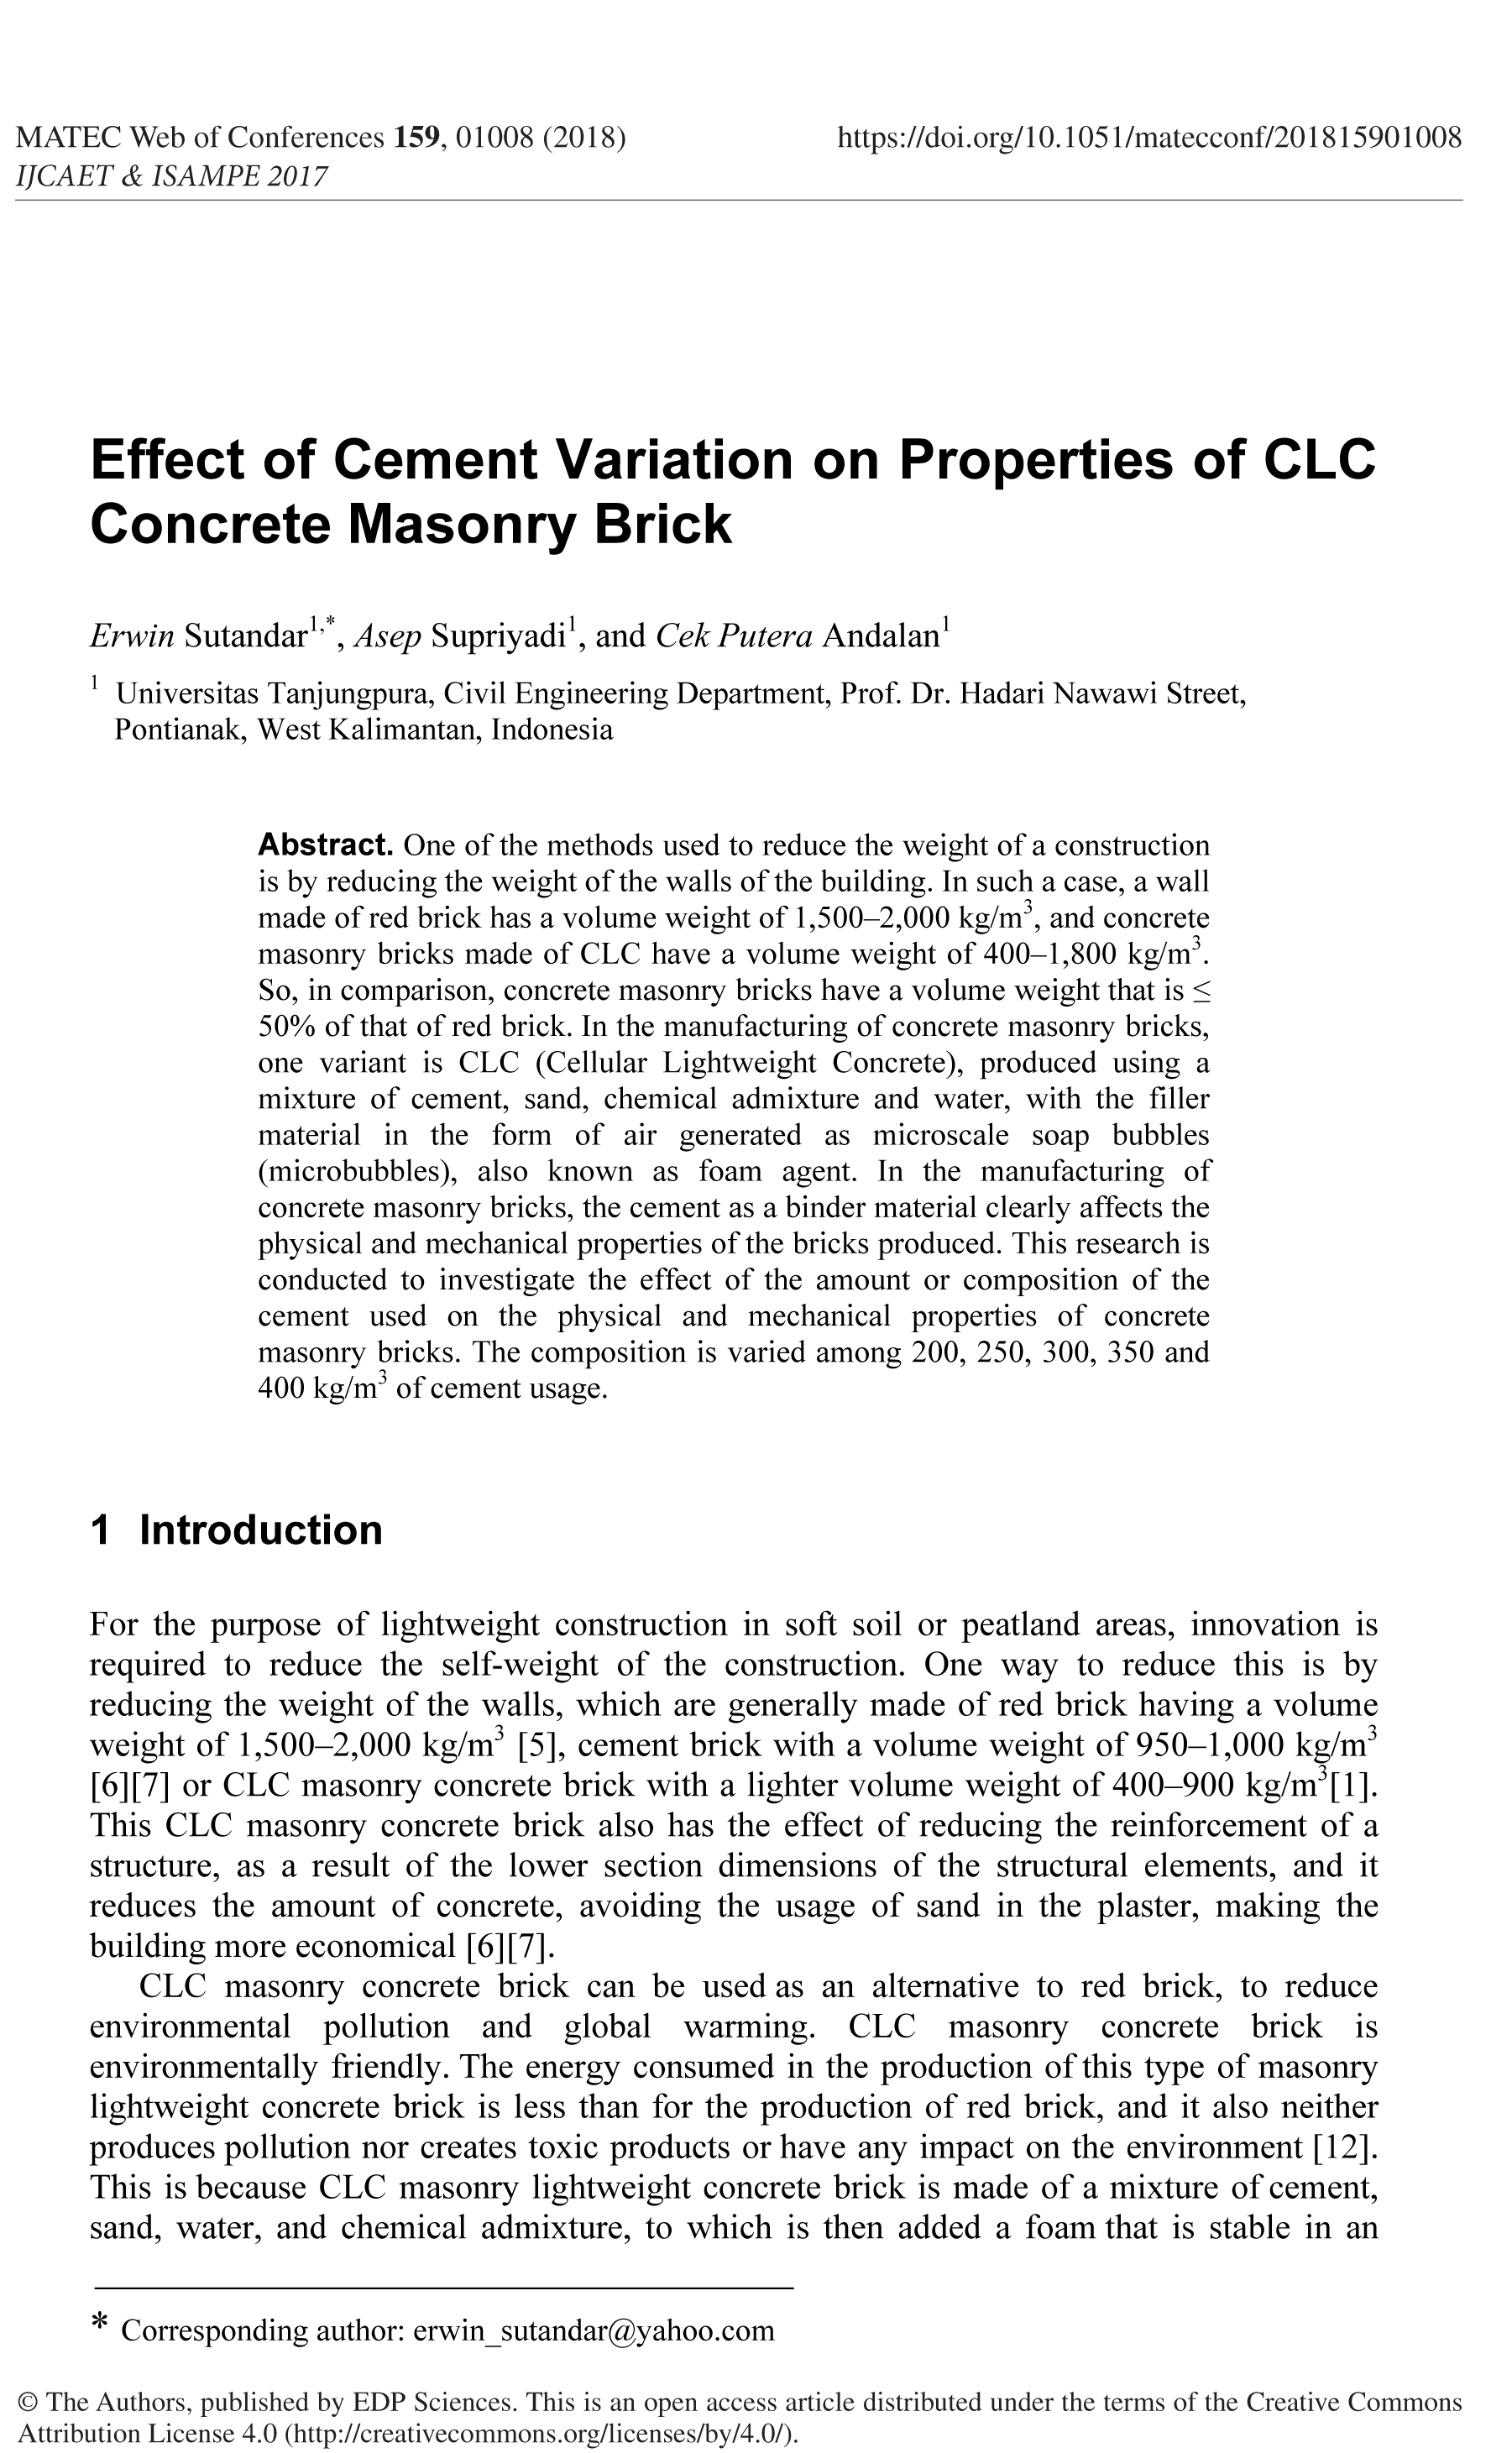 Effect of Cement Variation on Properties of CLC Concrete Masonry